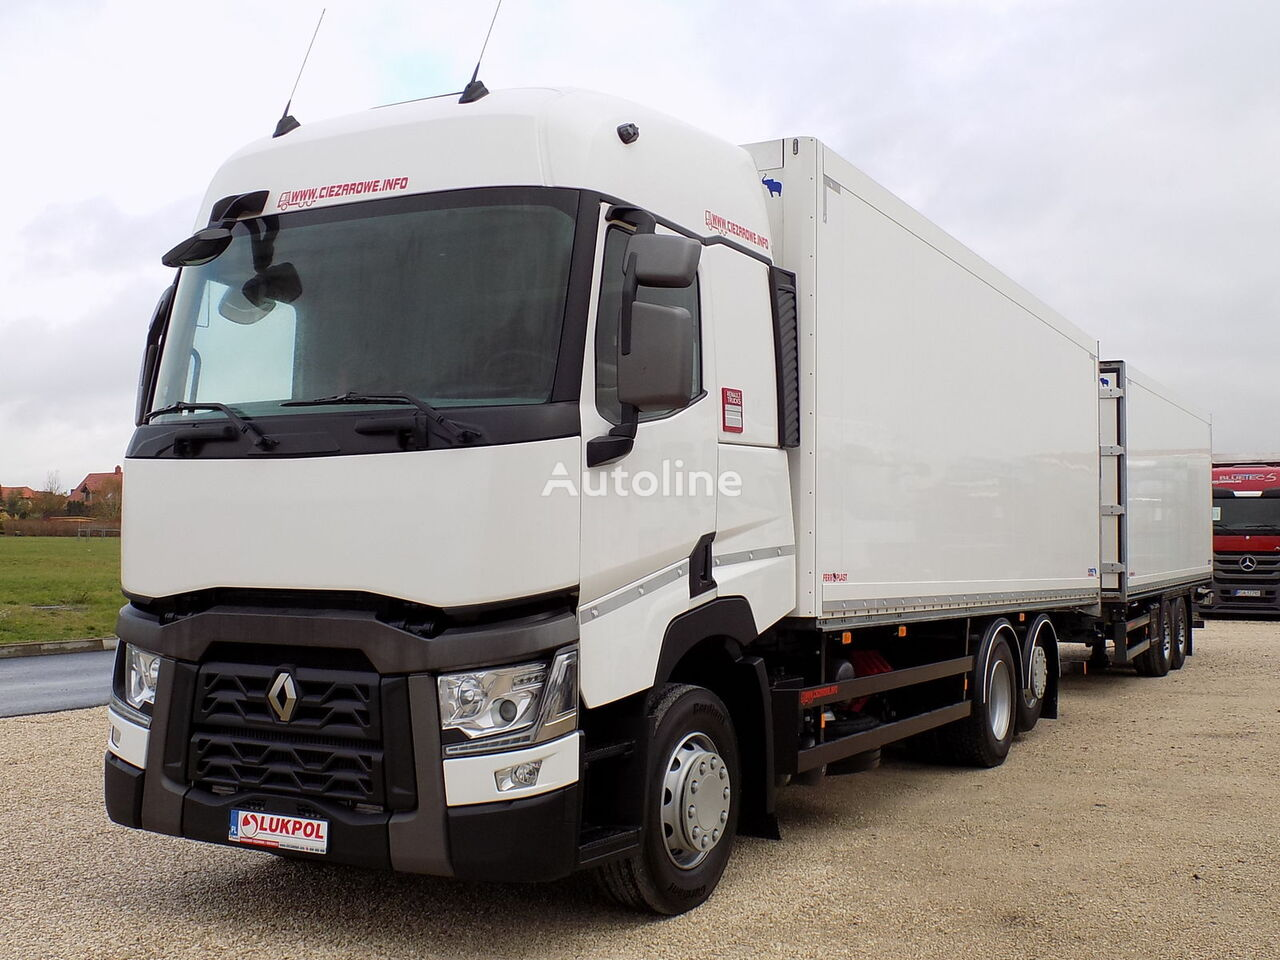 RENAULT T430 EURO 6 - ZESTAW TANDEM PRZEJAZDOWY - ALL NEW !! camion isotherme + remorque isotherme